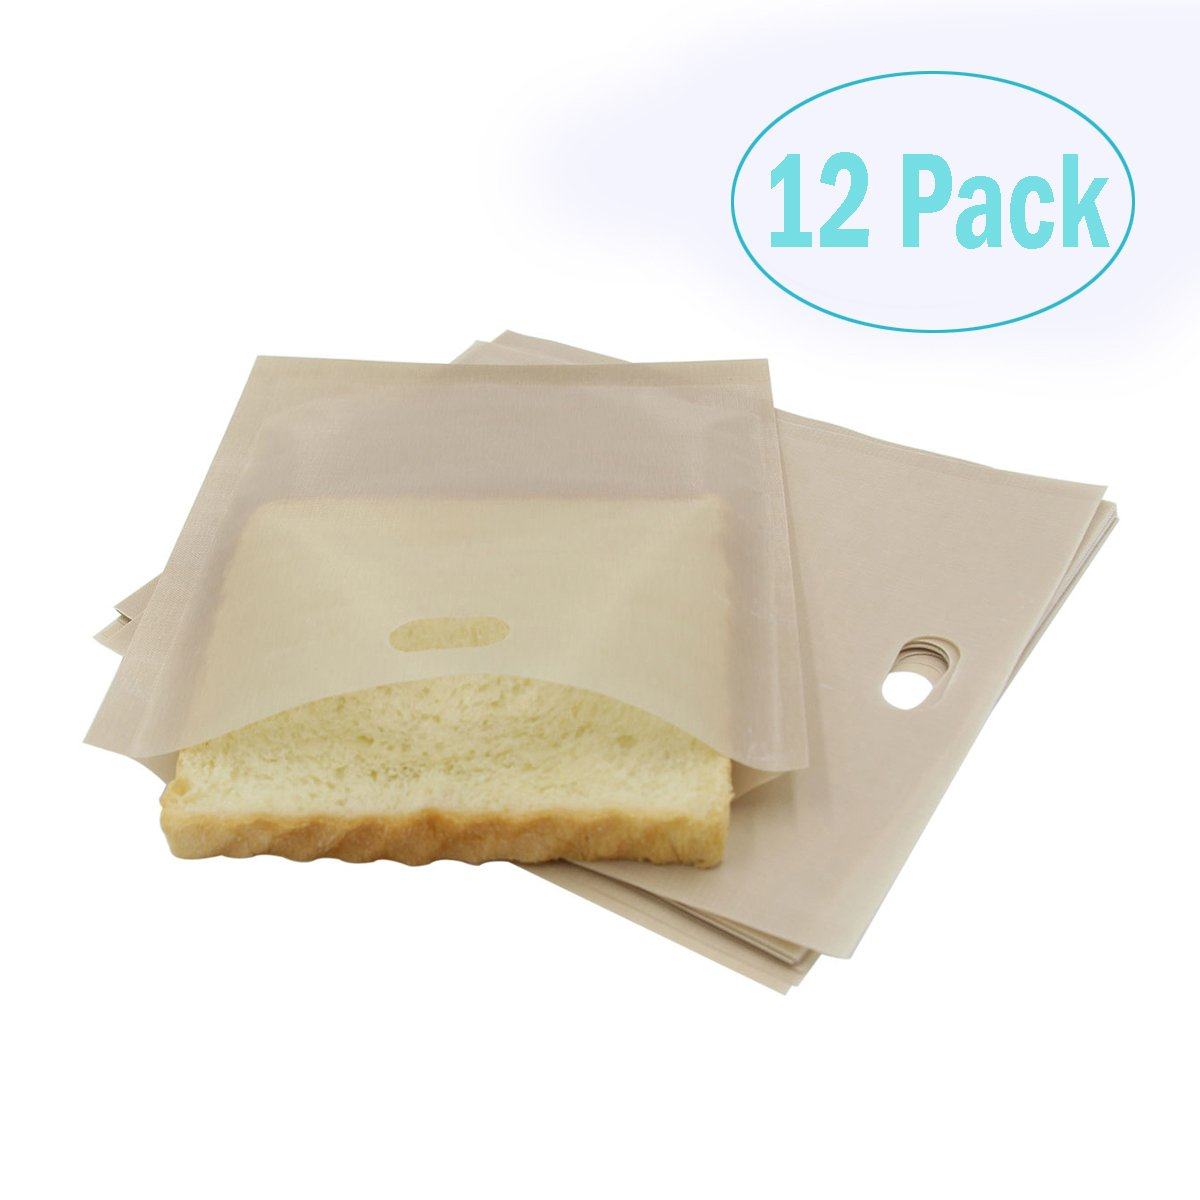 Toaster Bags (12 Pack) for Grilled Cheese Sandwiches, Reusable and Non-stick